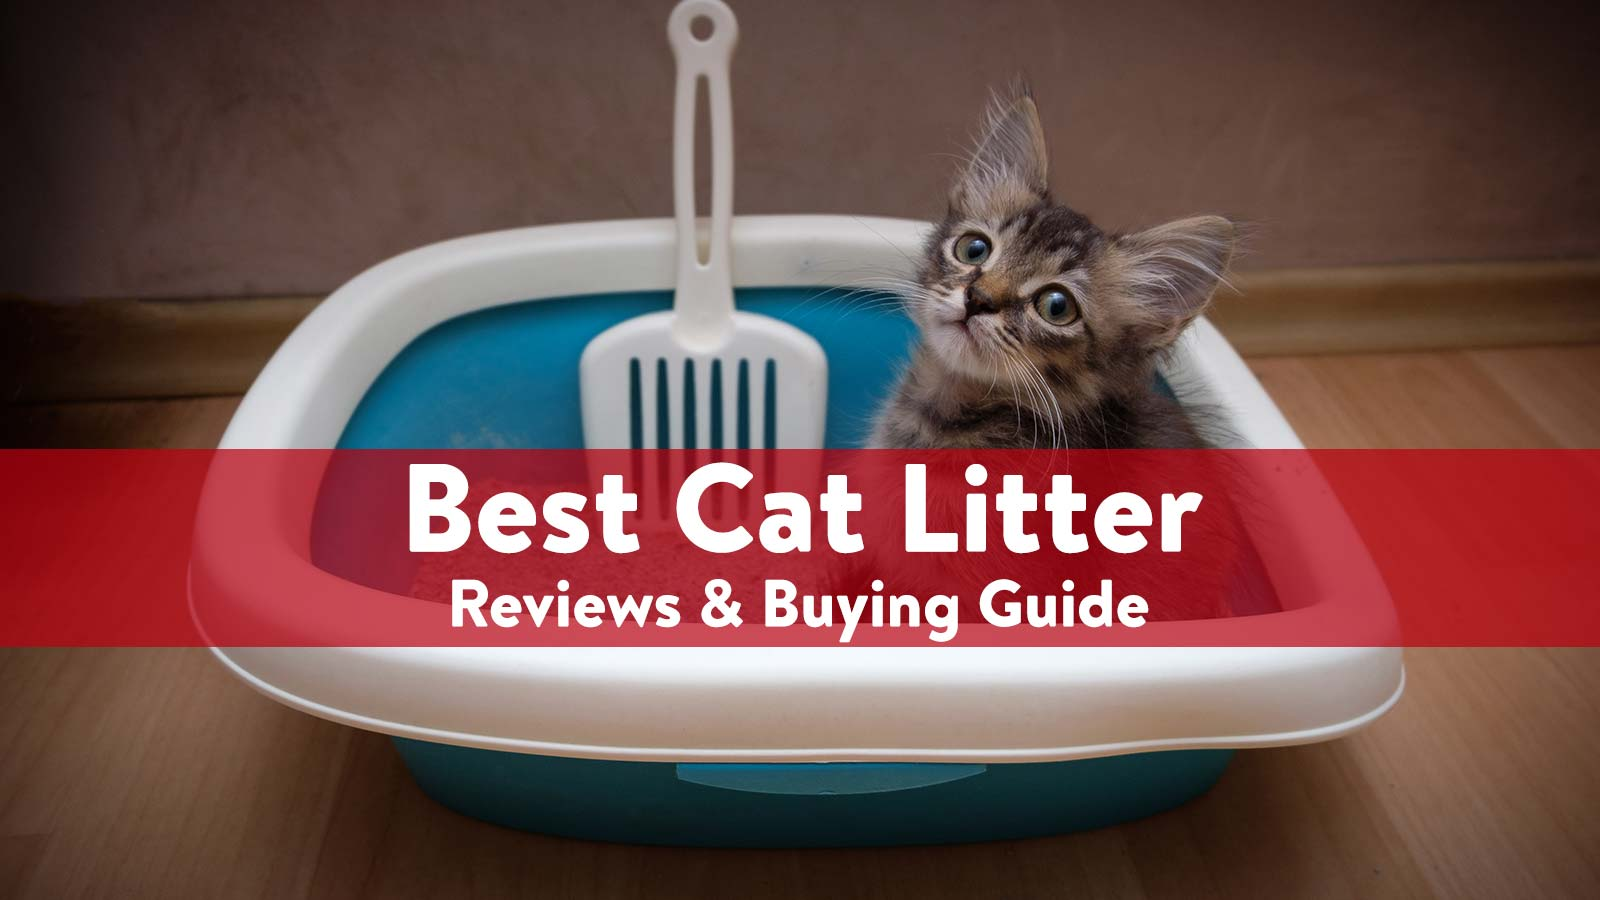 Best Cat litter